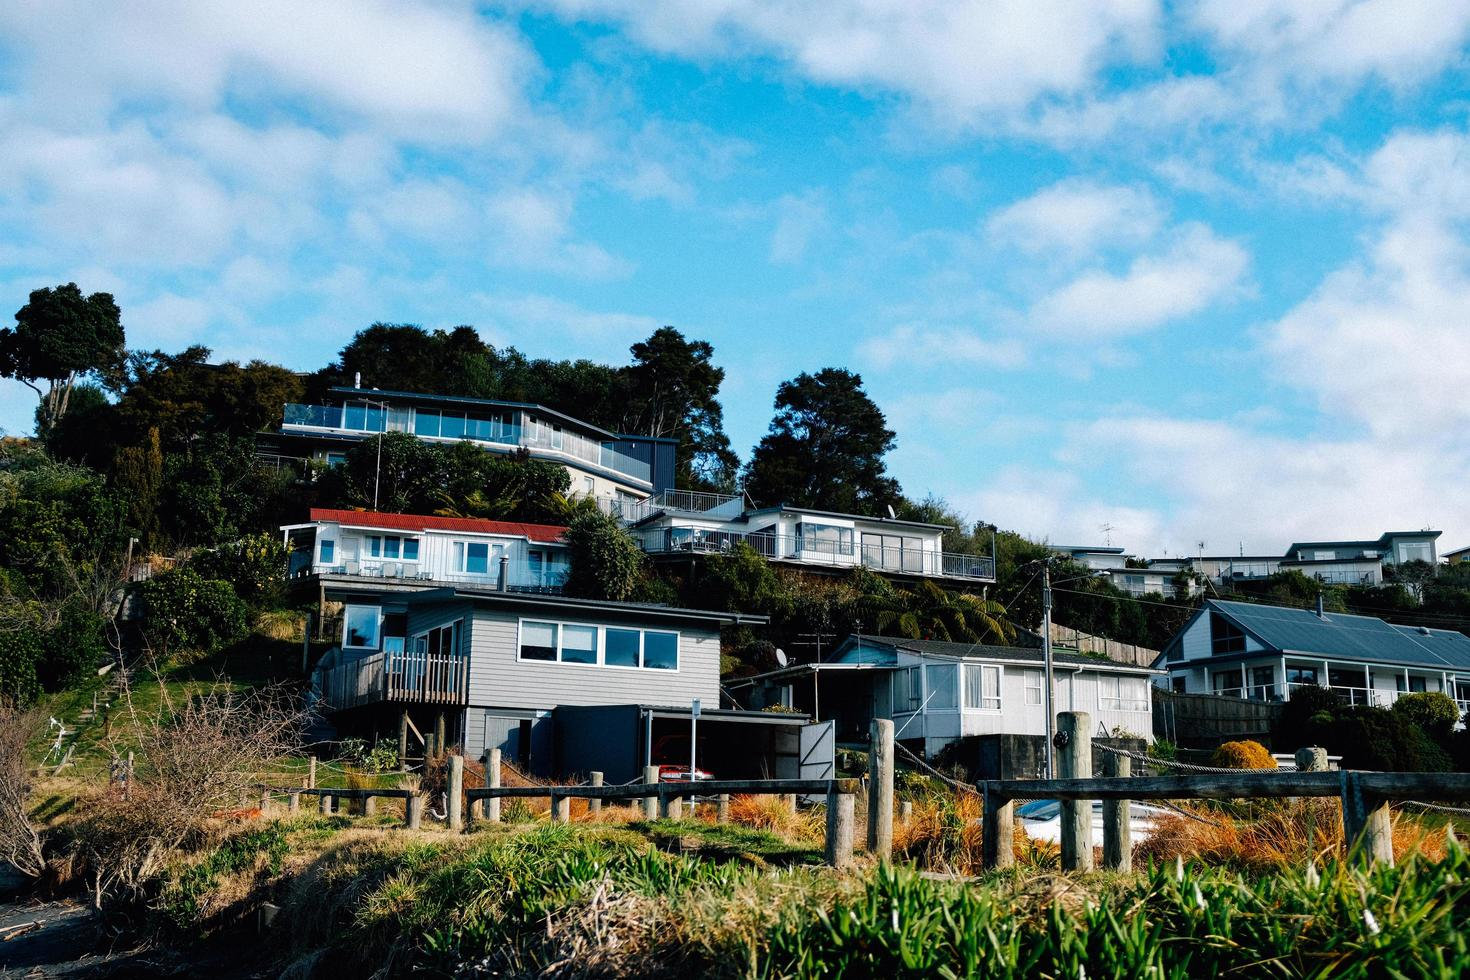 Houses on a hill under cloudy blue sky photo